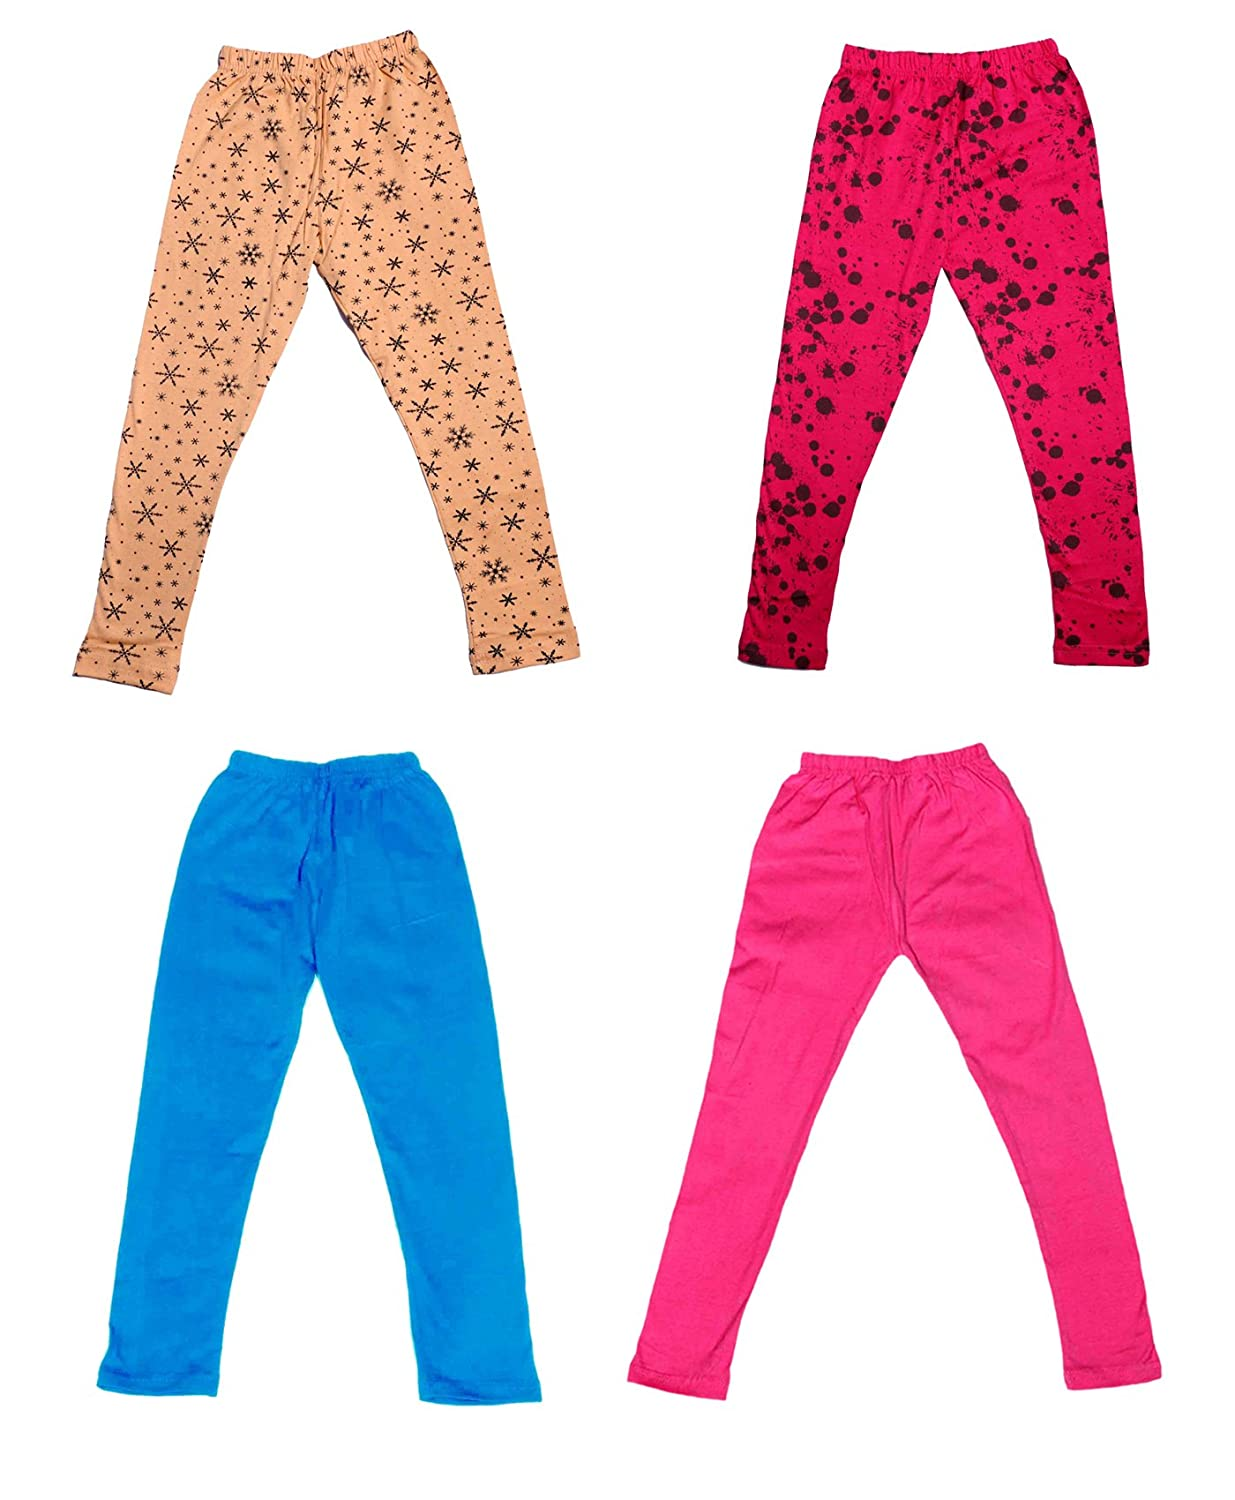 /_Multicolor/_Size-7-8 Years/_71411121920-IW-P4-30 Pack Of 4 and 2 Cotton Printed Legging Pants Indistar Girls 2 Cotton Solid Legging Pants